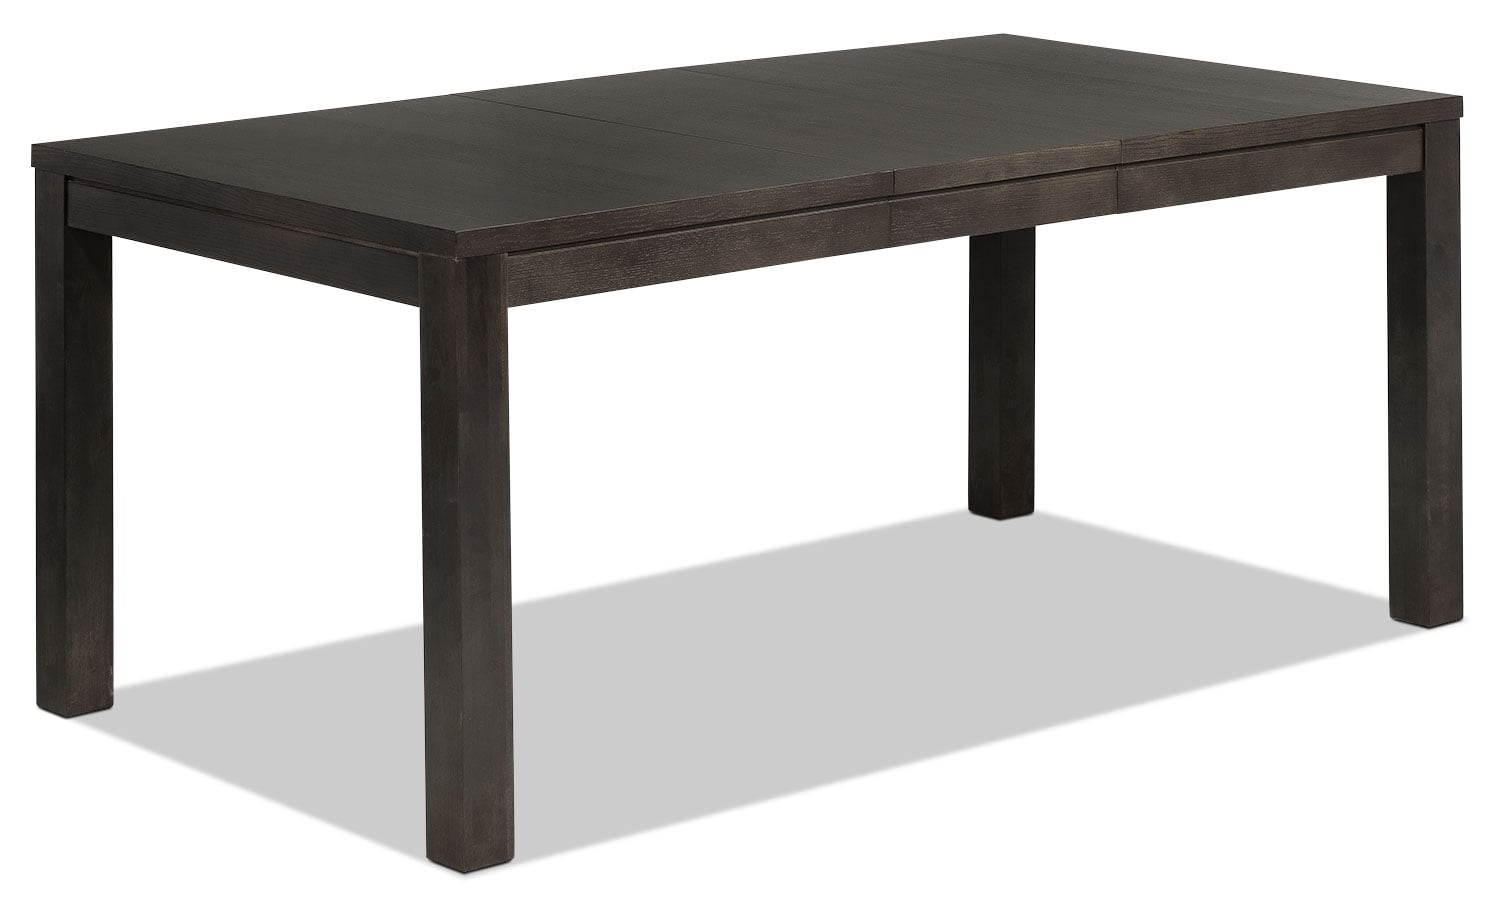 Scarlet Dining Table - Slate Grey